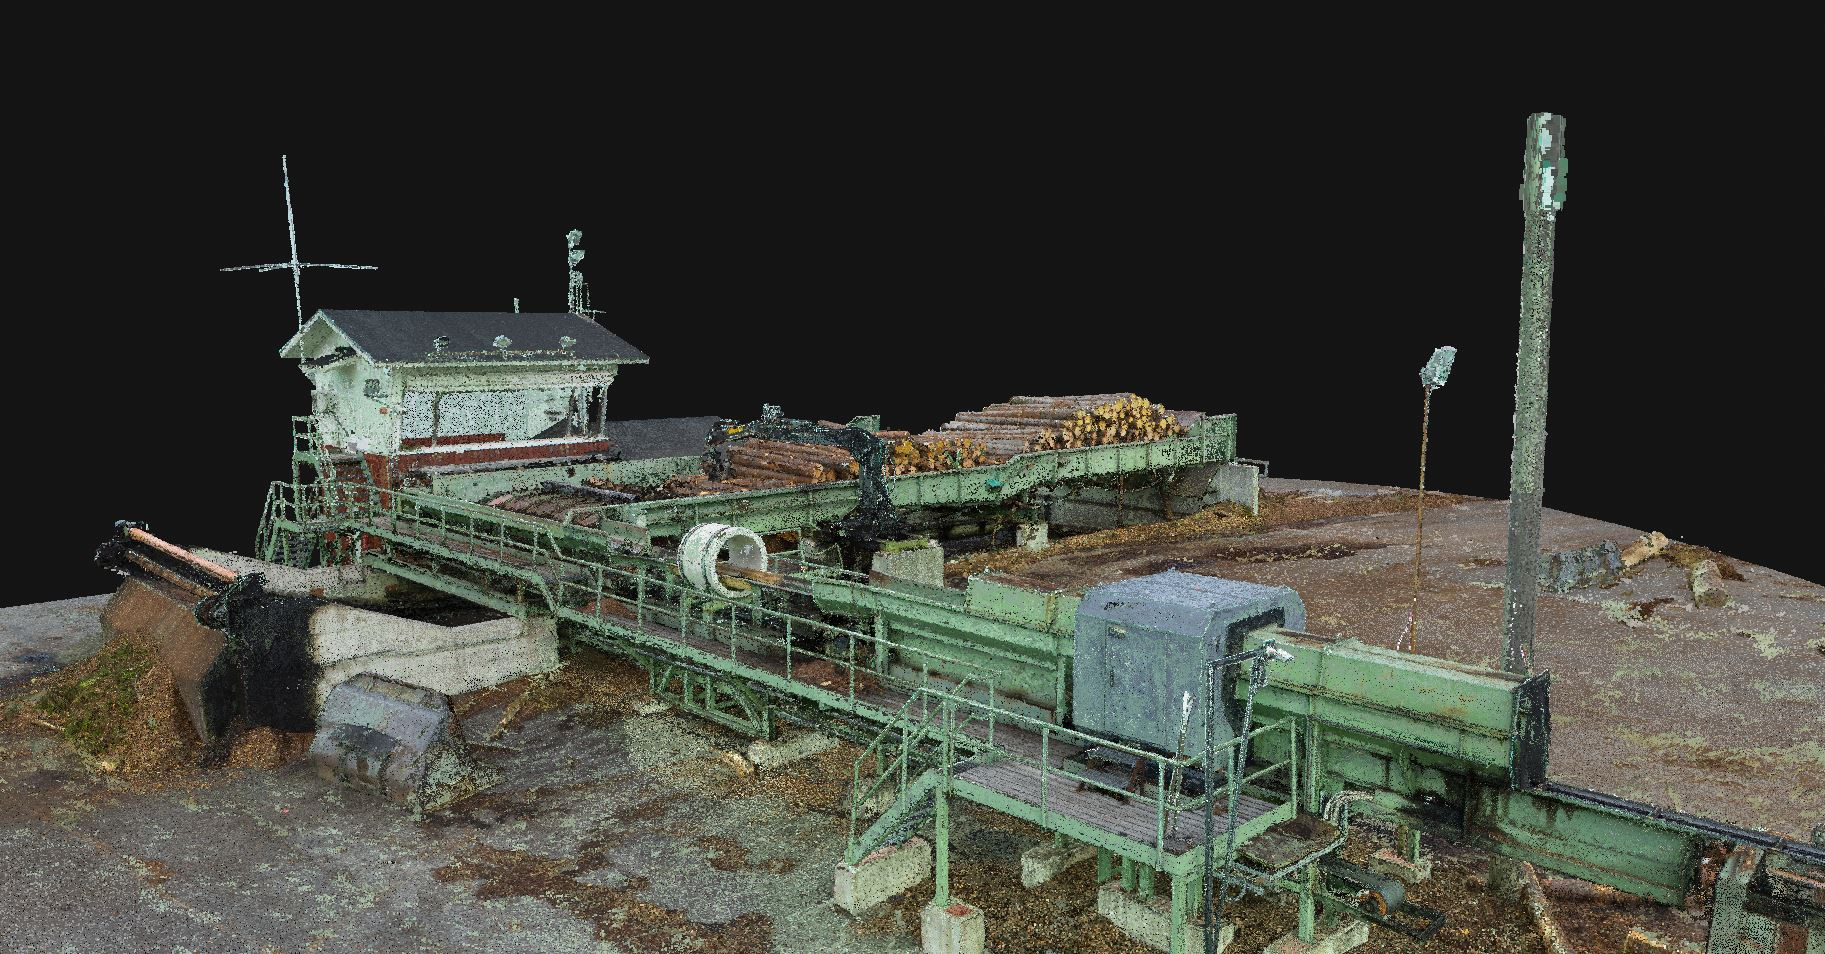 point cloud of the lumber milling